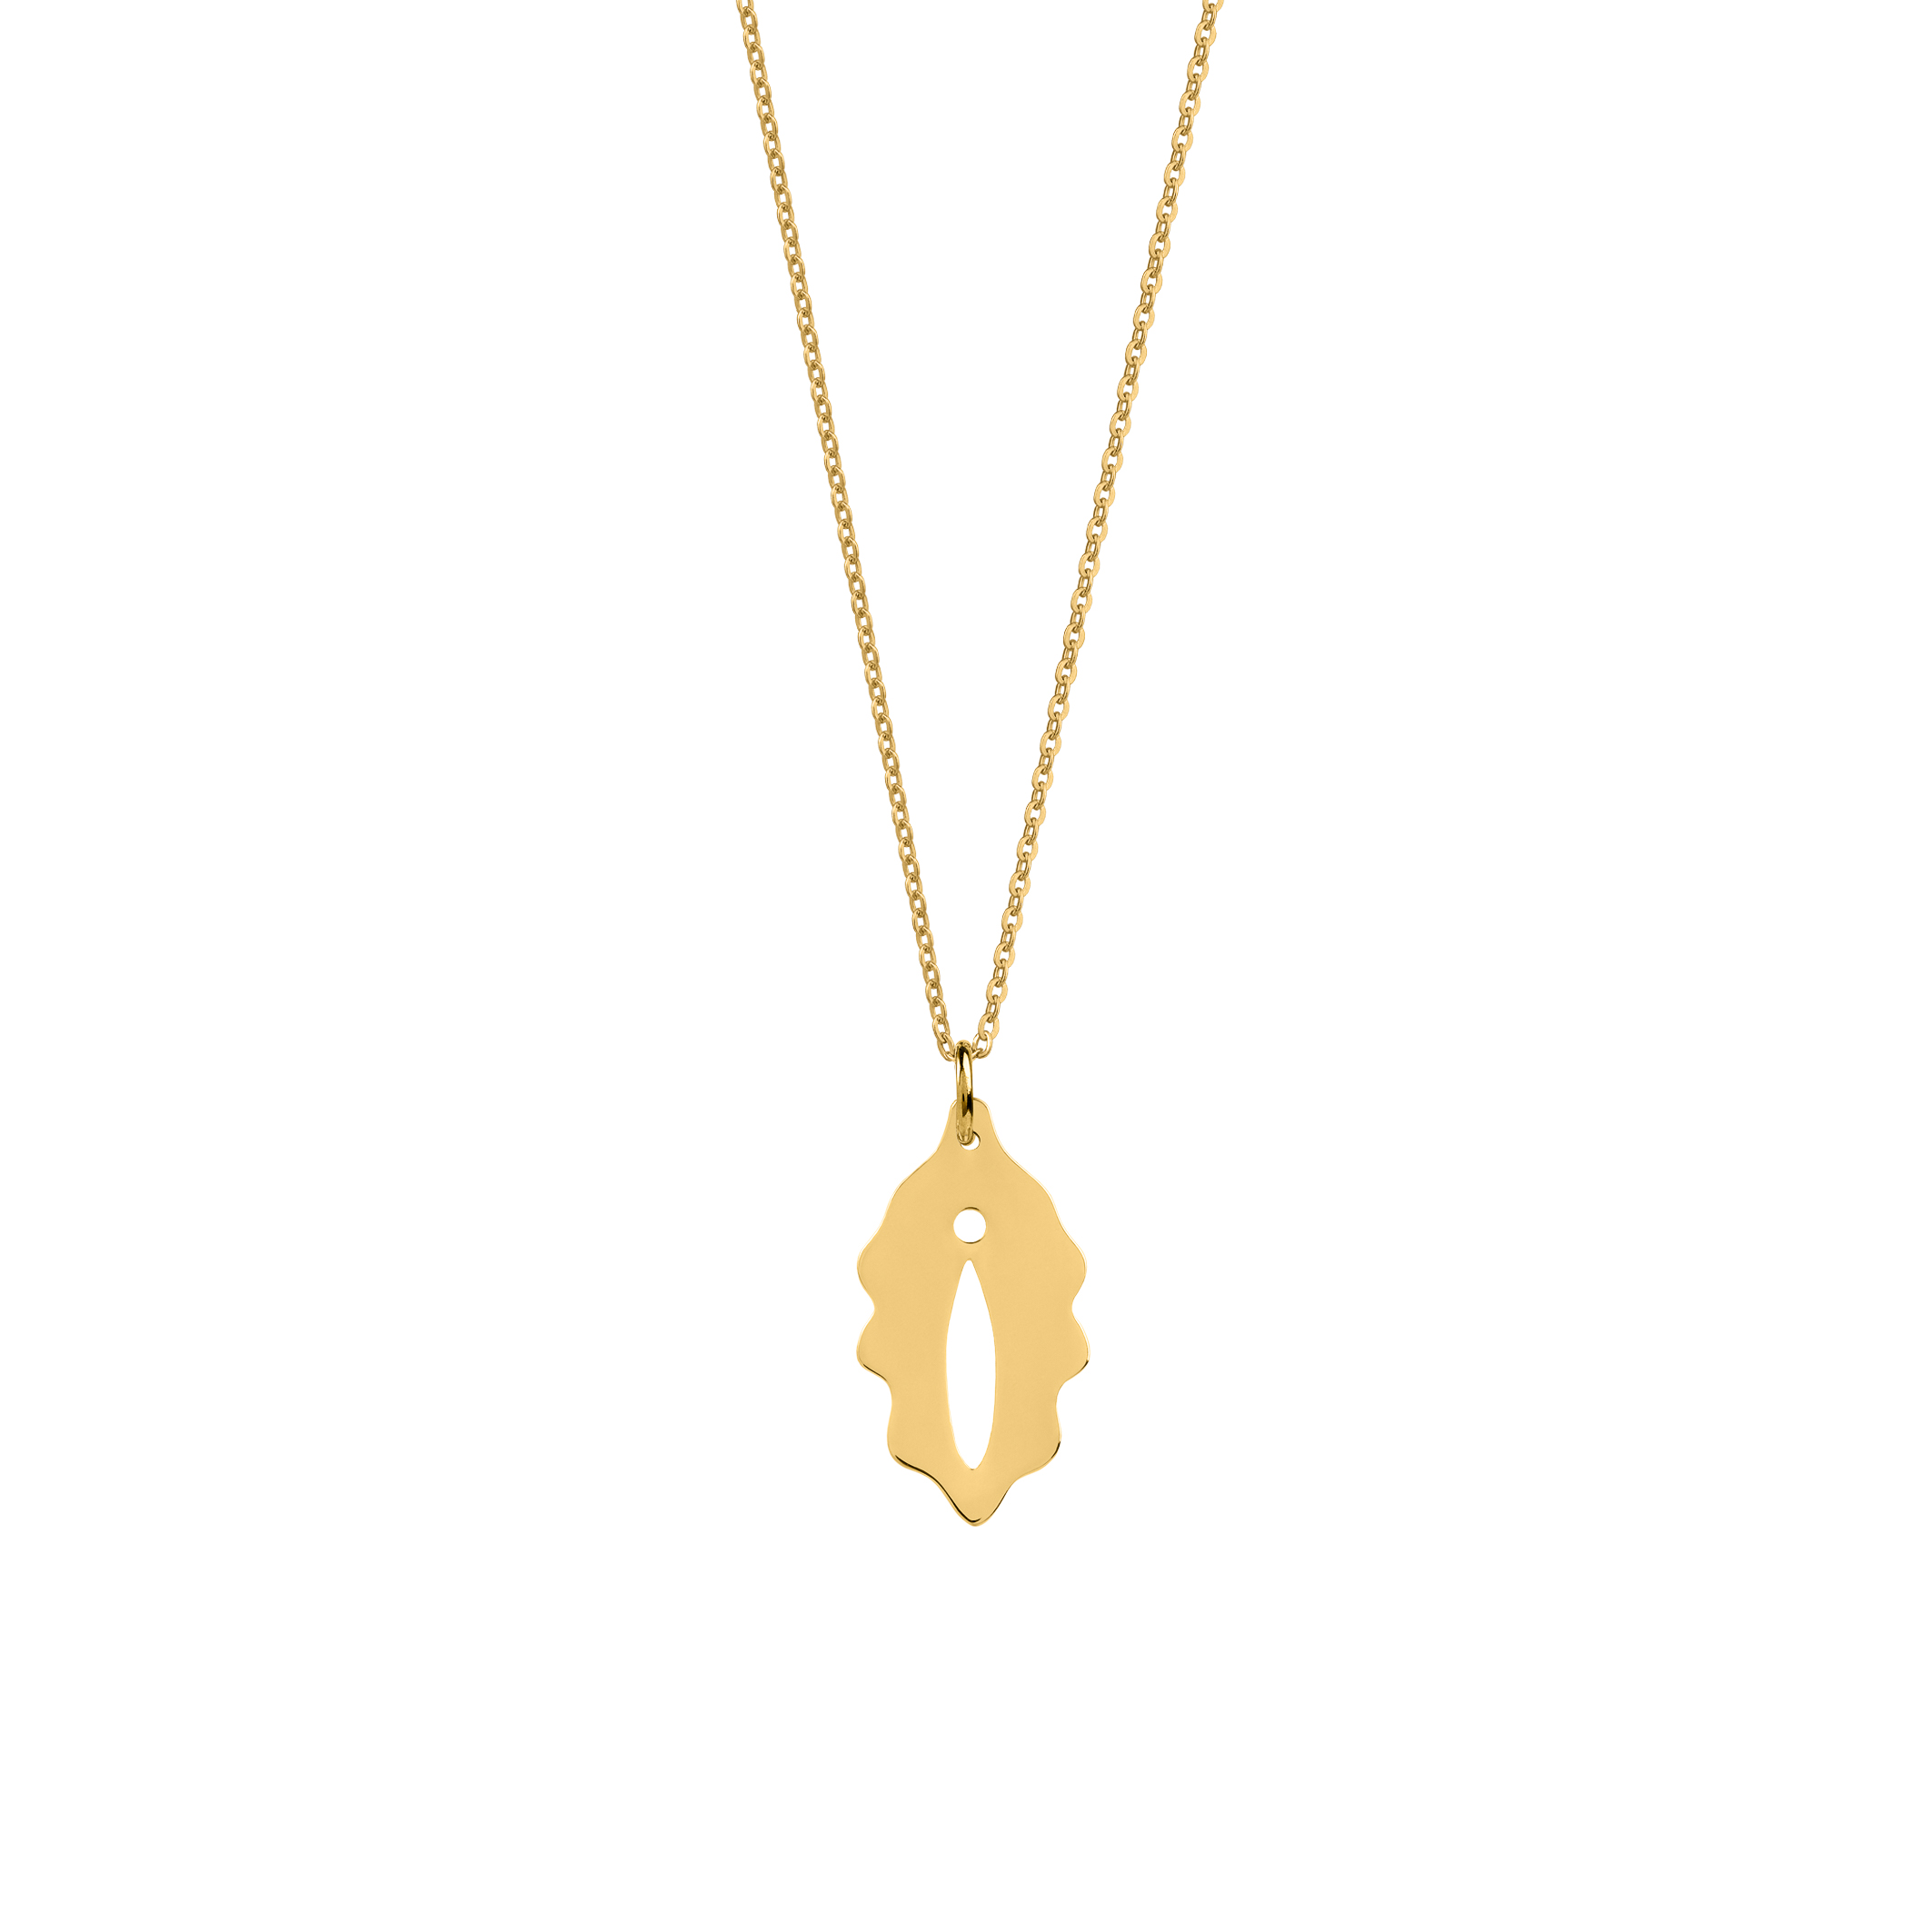 limited edition/ féminin necklace gold